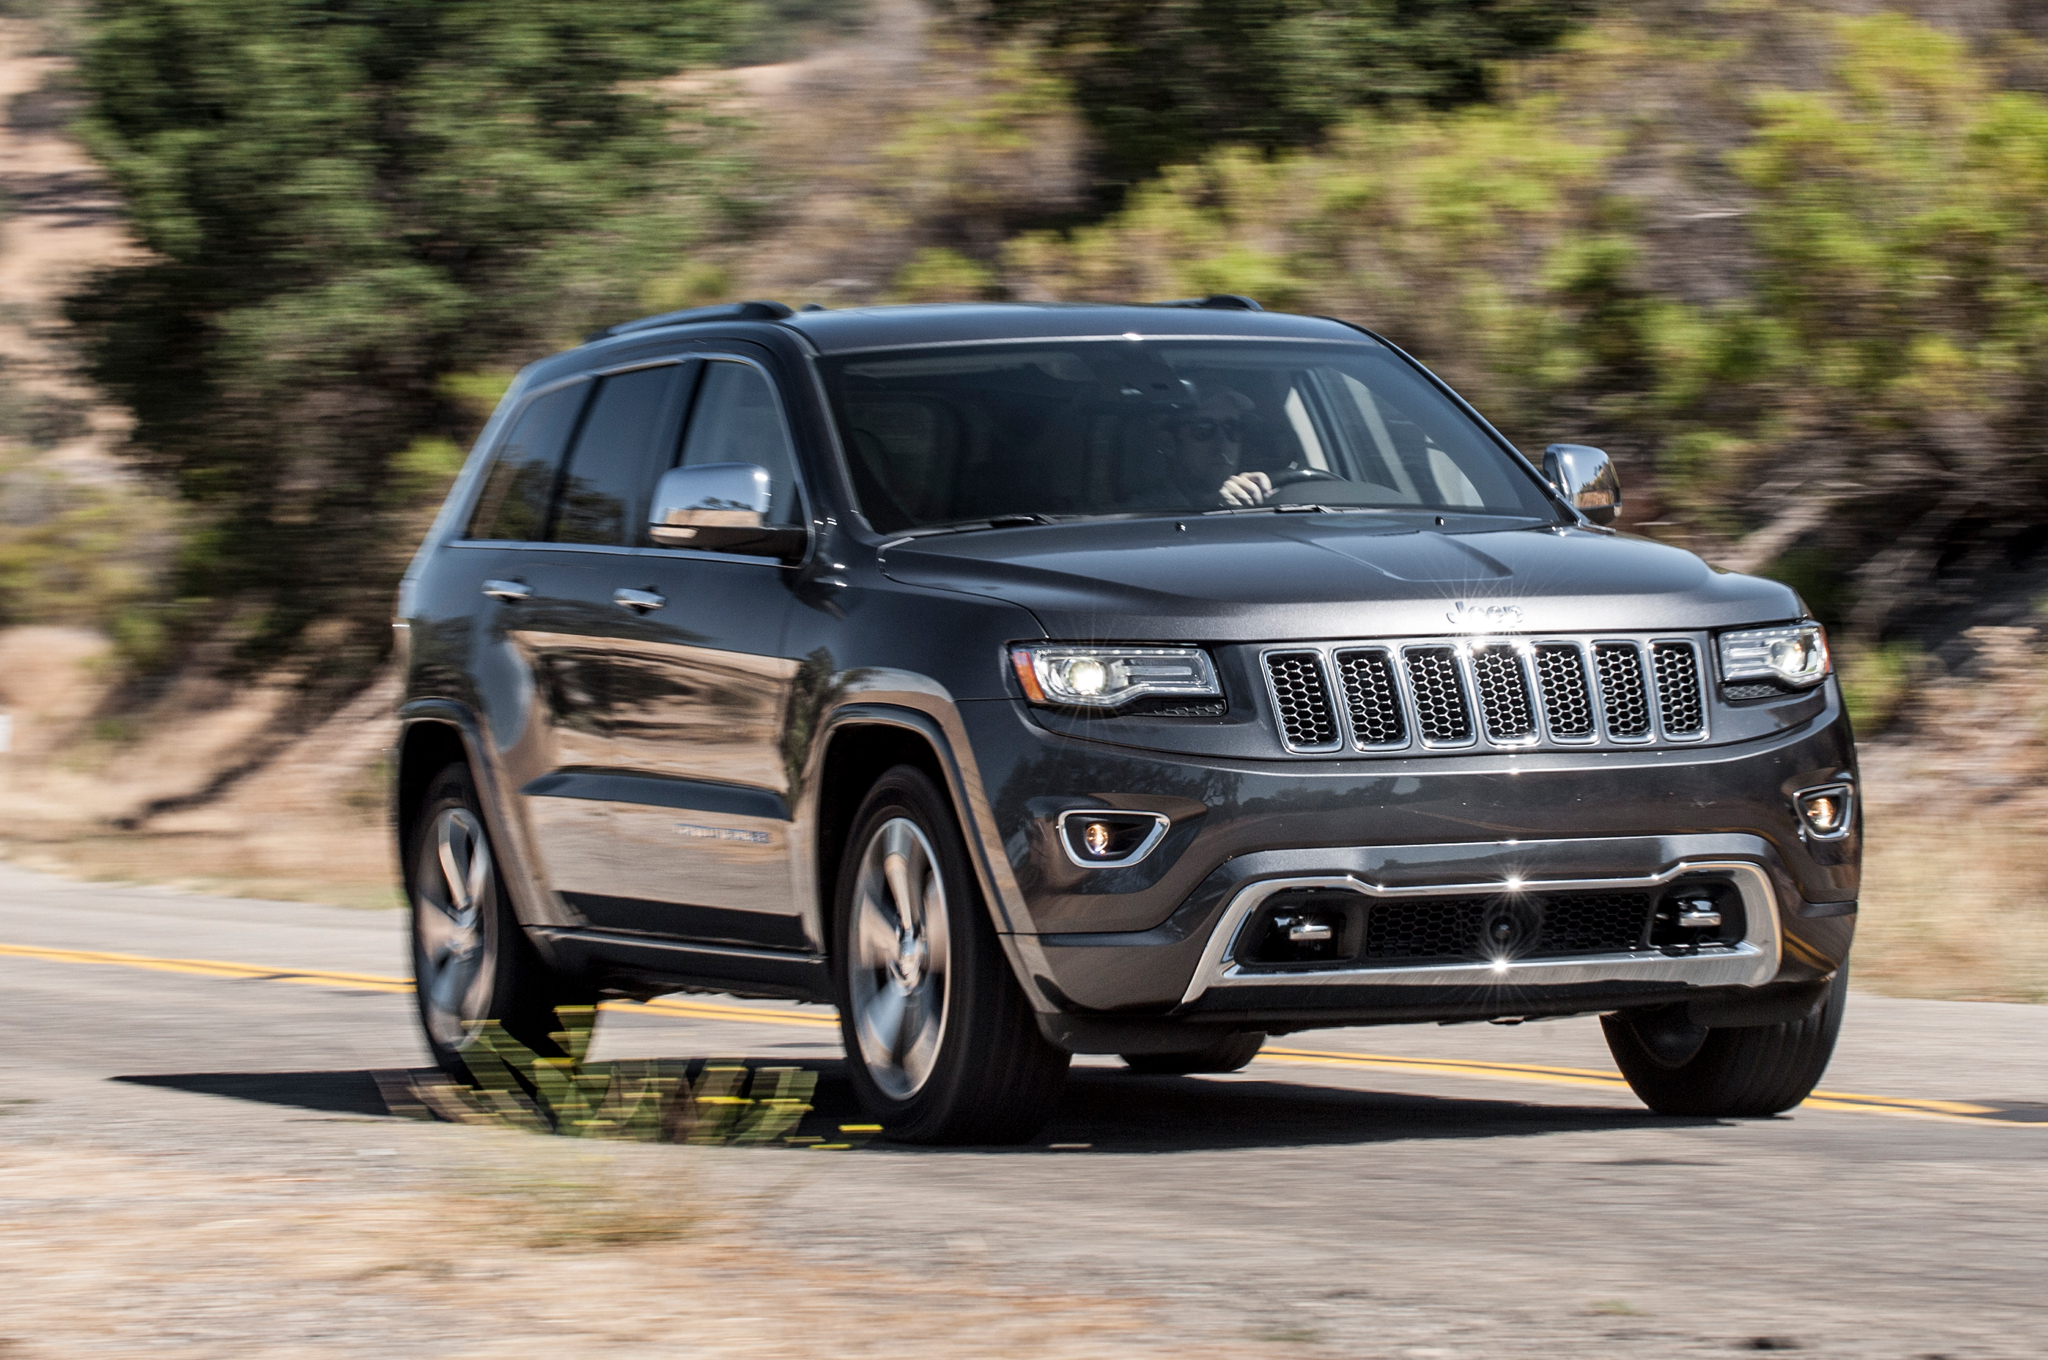 jeep 2014 jeep grand cherokee 2014 jeep grand cherokee image 10. Cars Review. Best American Auto & Cars Review